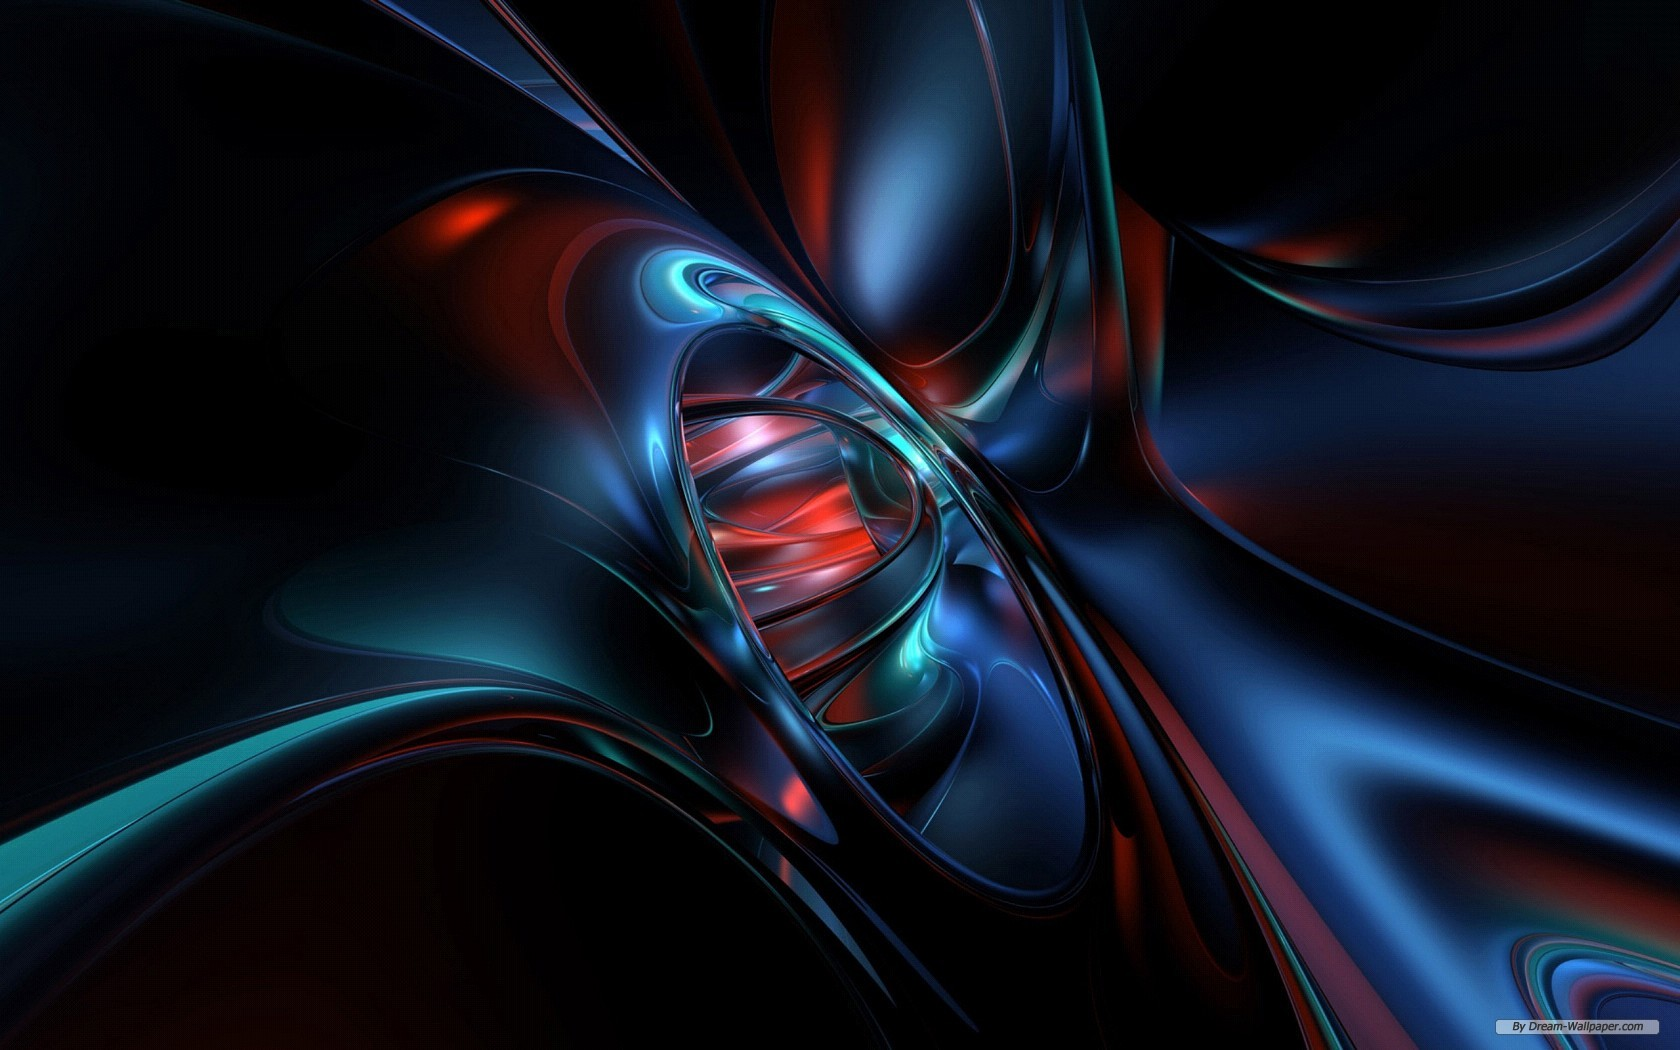 3D Wallpaper Desktop Backgrounds 1680x1050 - WallpaperSafari